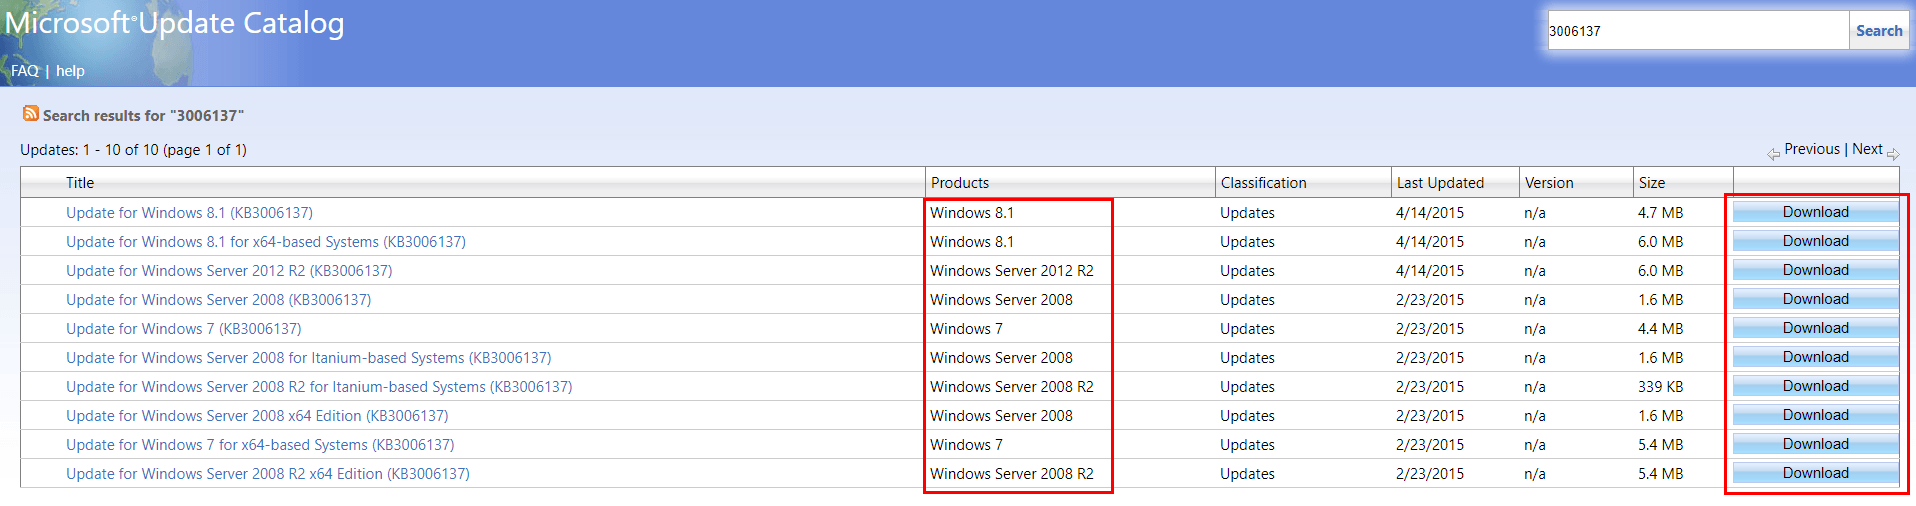 SOLVED] Potential Windows Update Database Error Detected in Windows